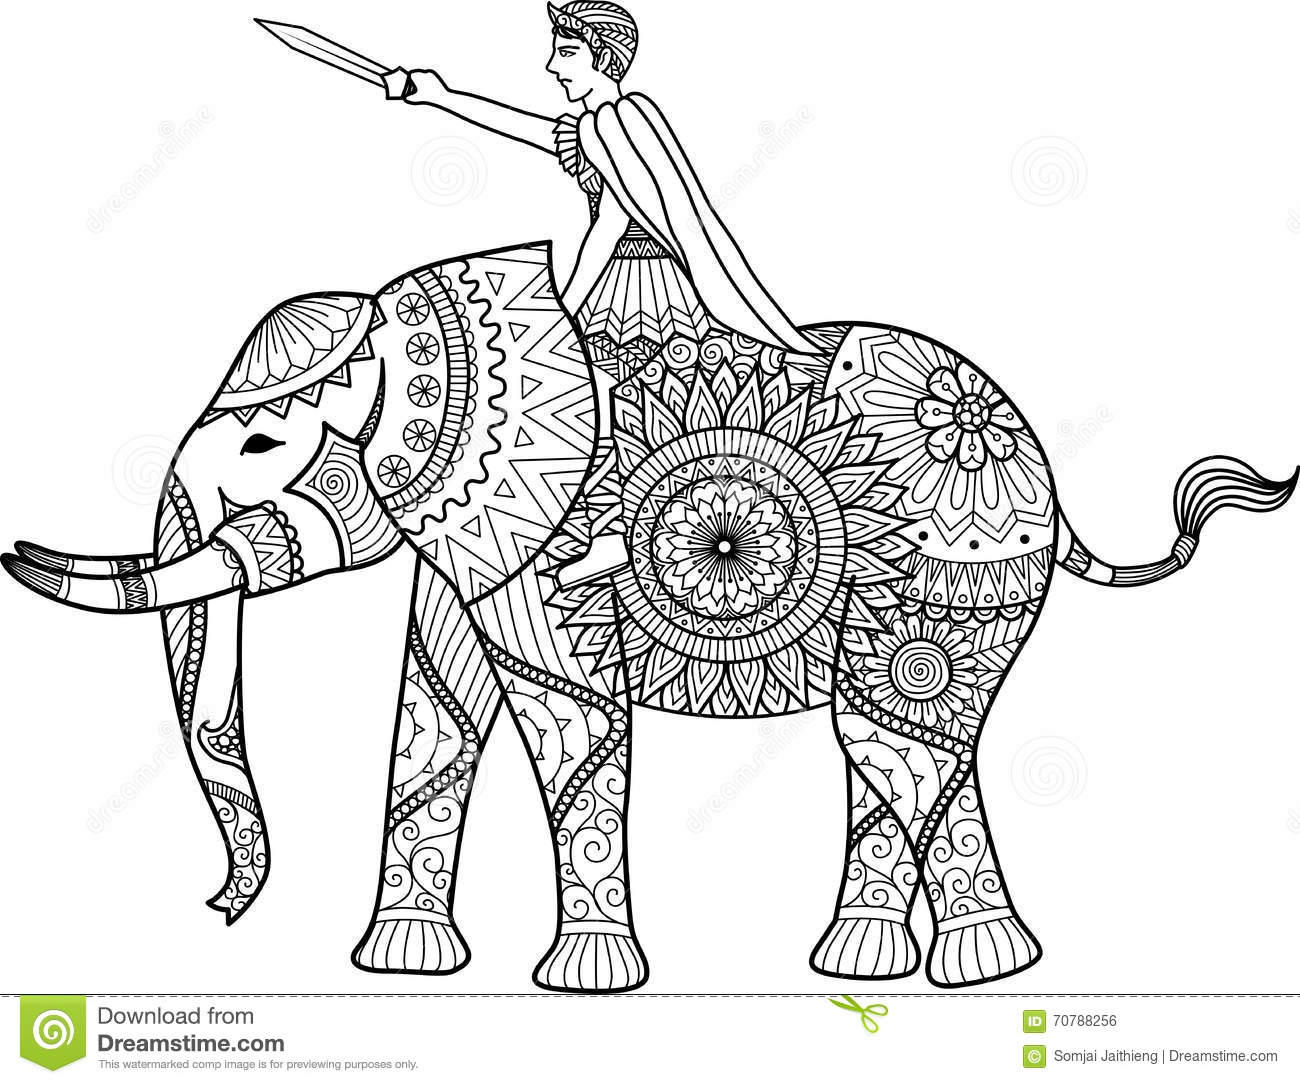 Kleurplaat Paard Playmobil Zentangle Sylized Of Warrior Riding Elephant Coloring Book